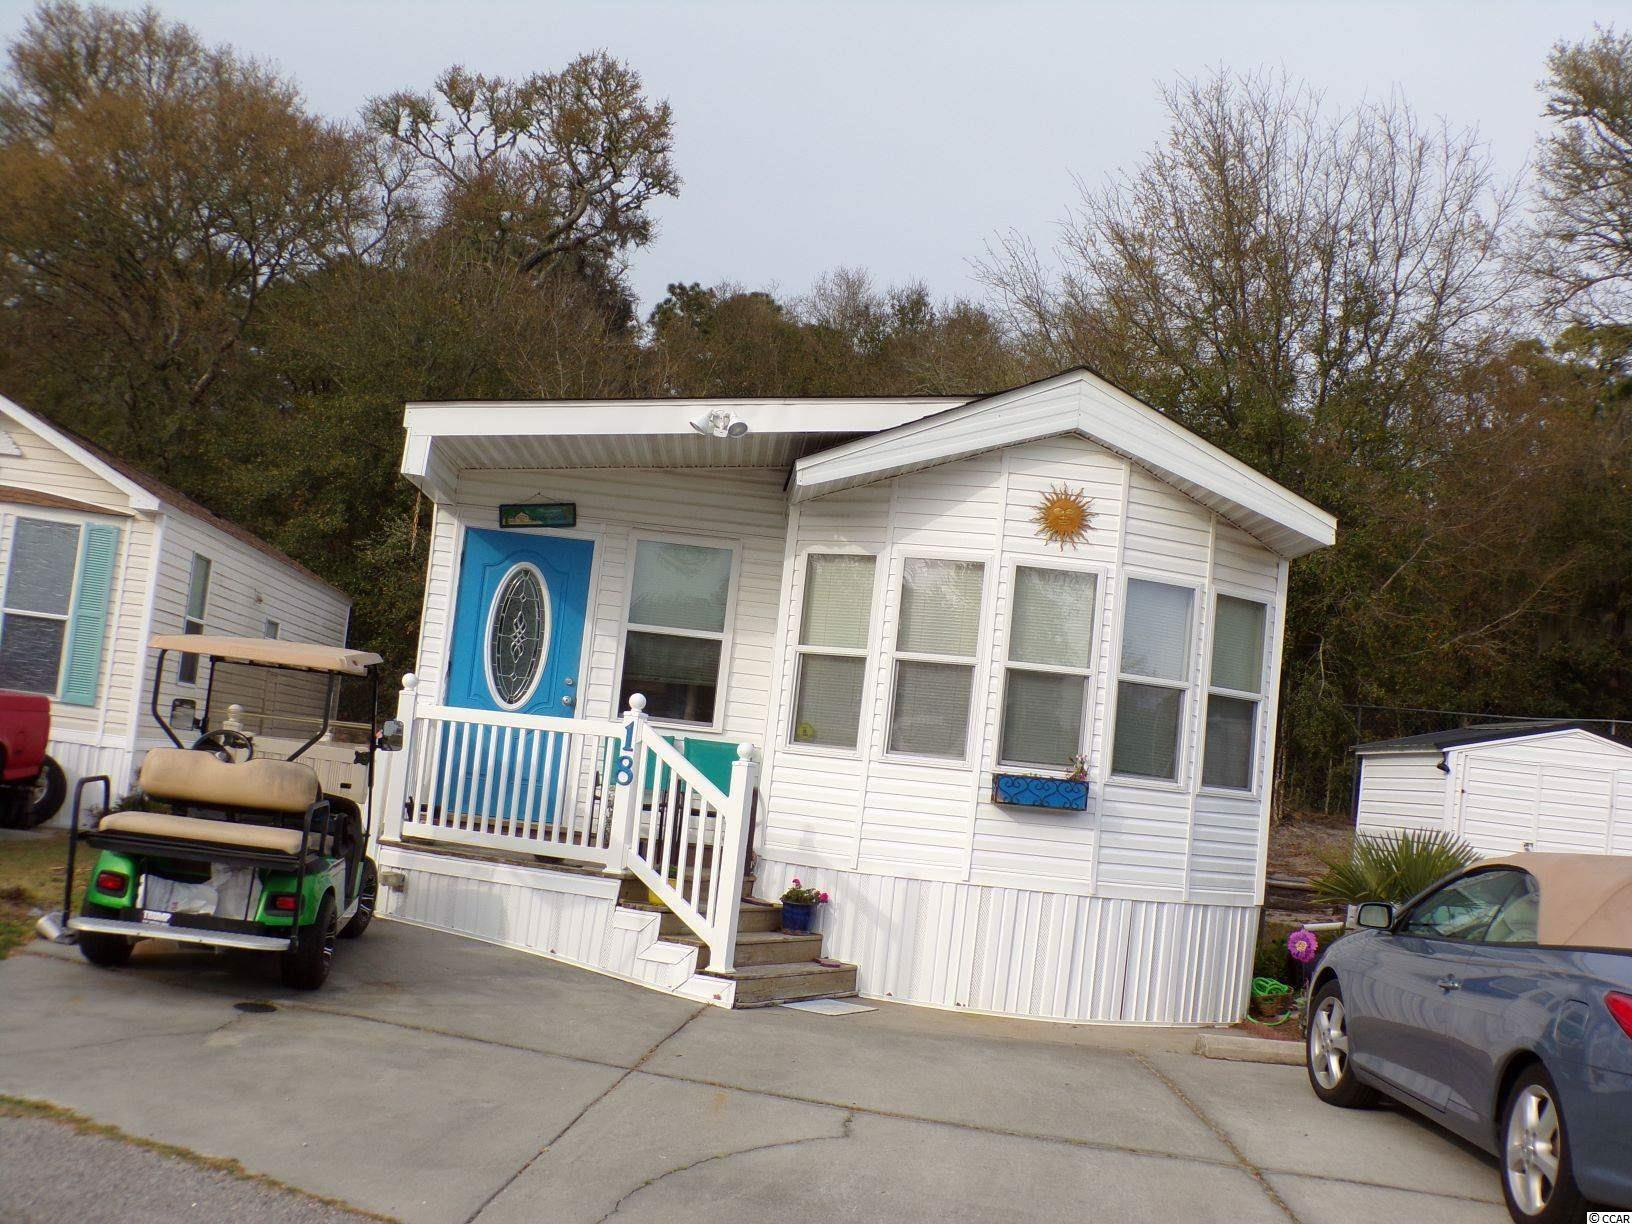 Two Bedroom, One Bathroom home in Desirable Myrtle Beach RV Resort. Excellent condition, move in ready. Large shed with washer & Dryer. Very nice gated community. Not far from restaurants, shopping, golf and more. The community offers 2 swimming pools, tennis court, mini golf.